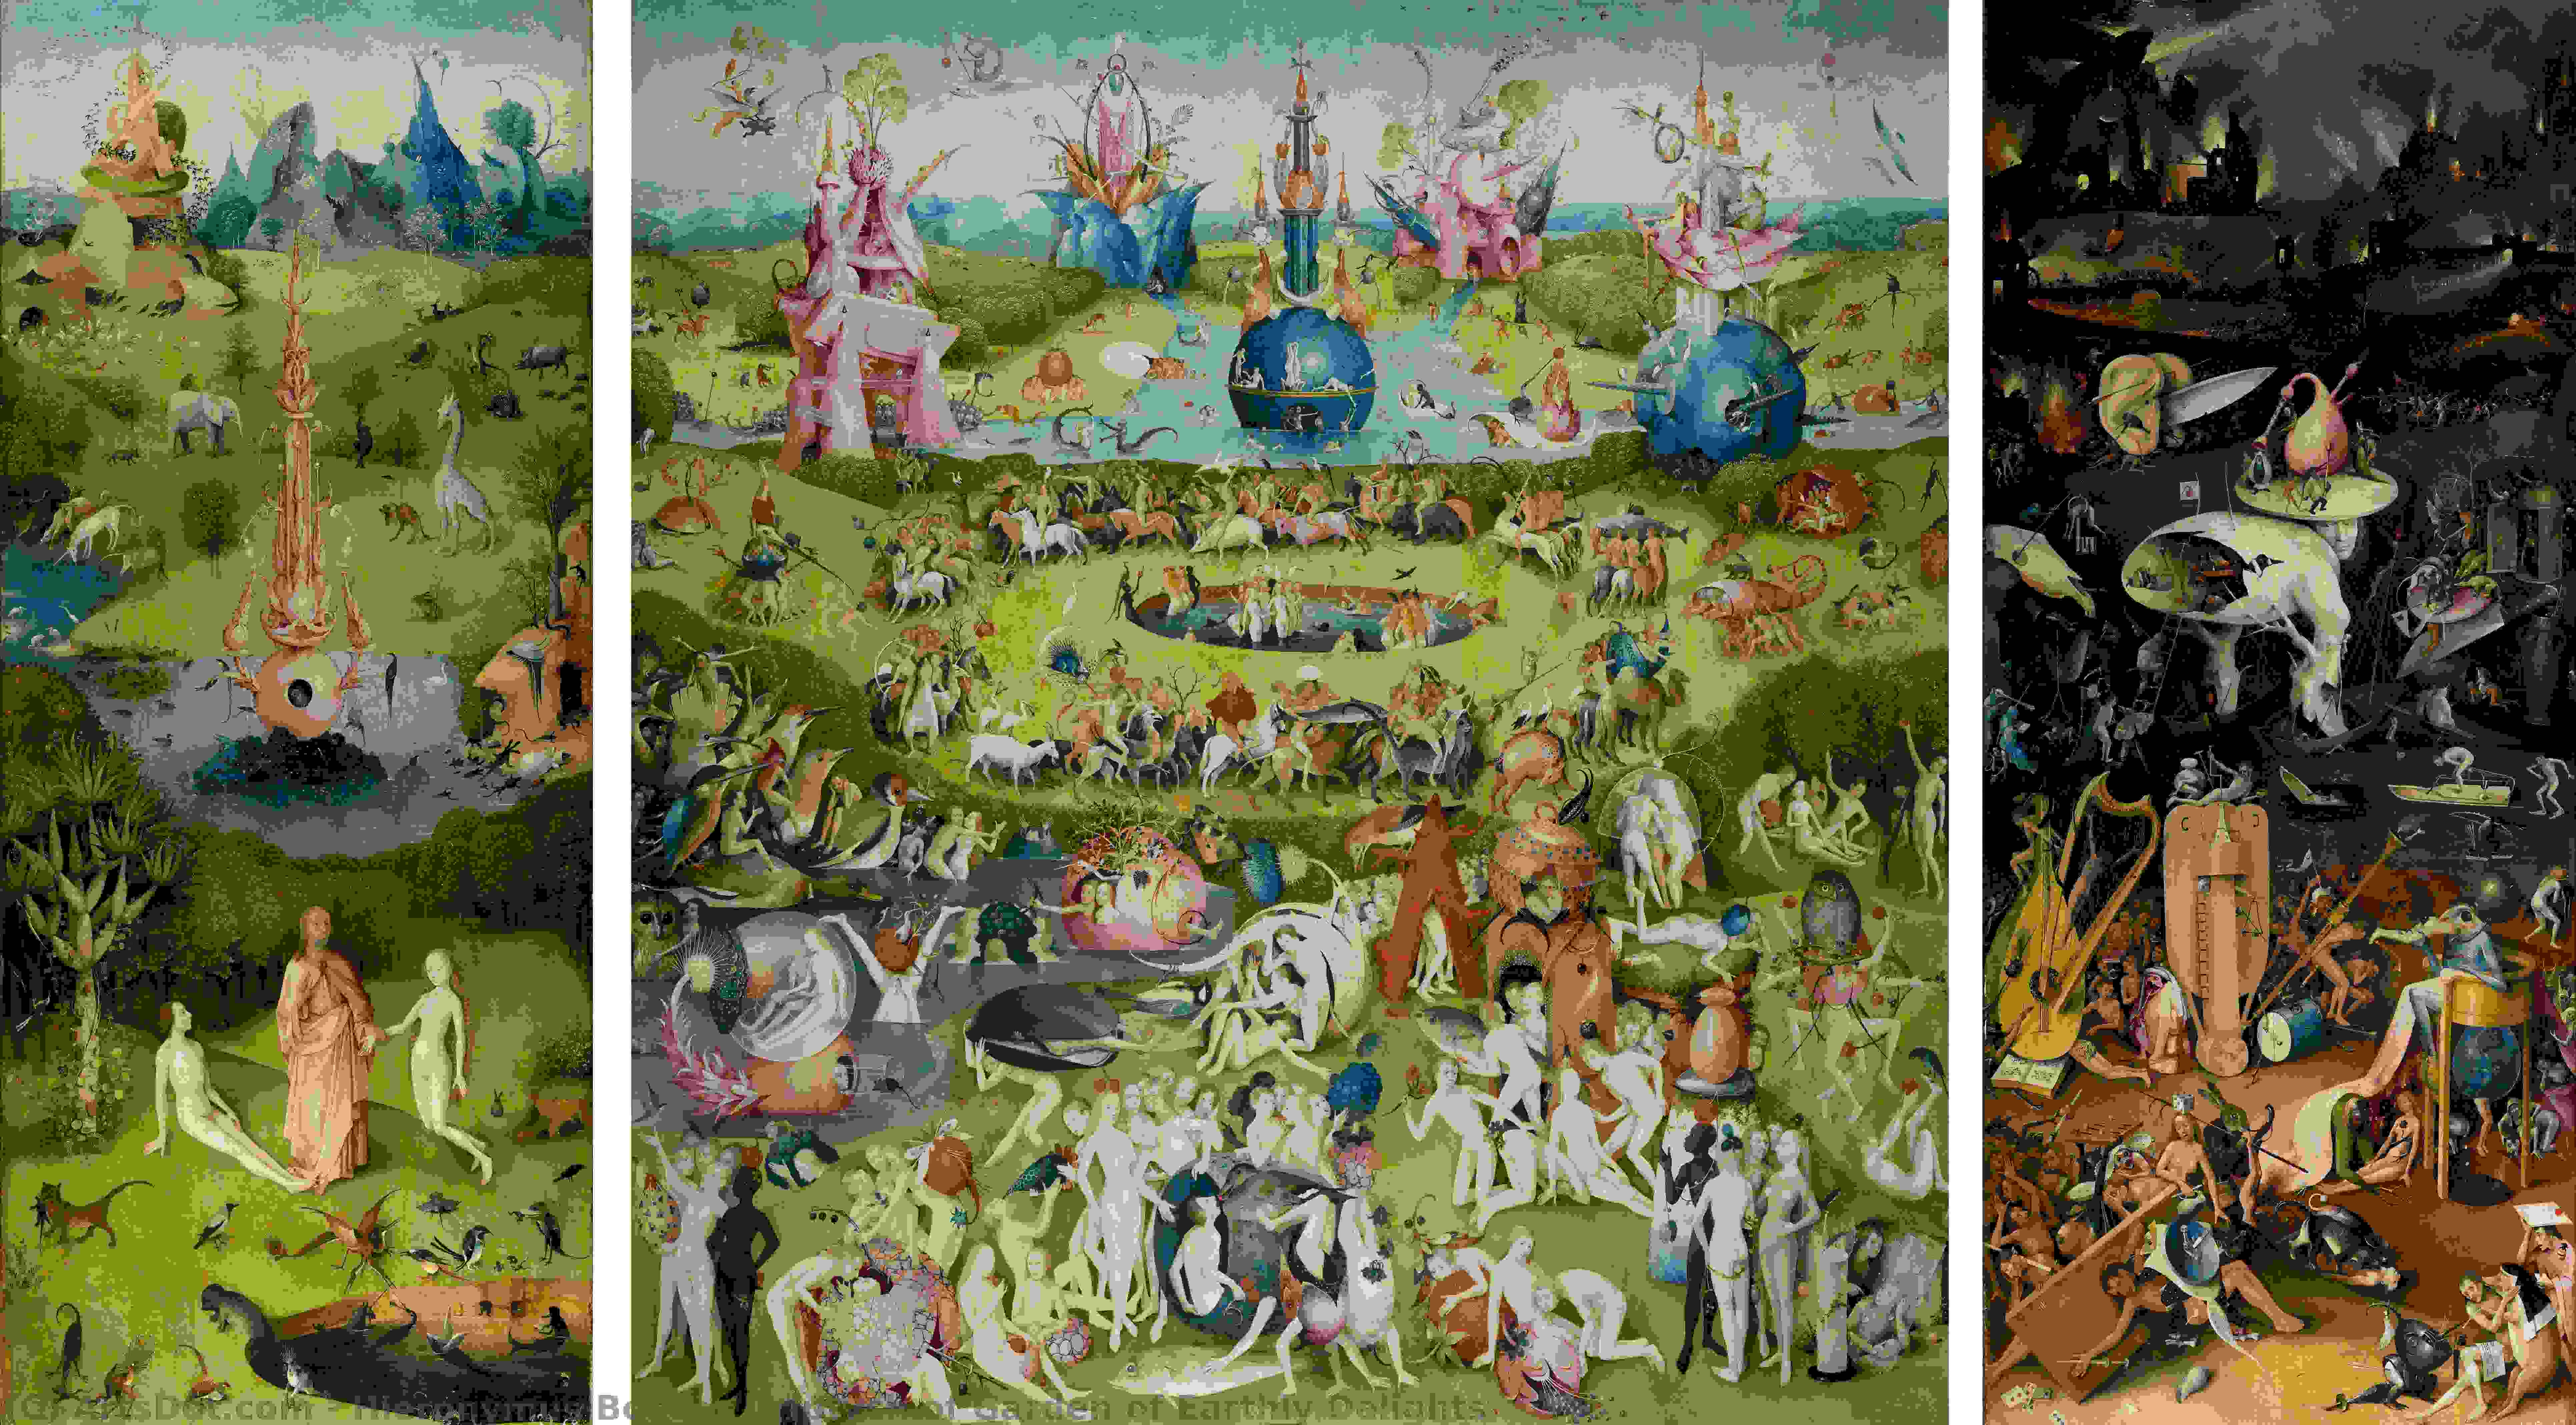 Wikioo.org - The Encyclopedia of Fine Arts - Painting, Artwork by Hieronymus Bosch - Triptych of Garden of Earthly Delights